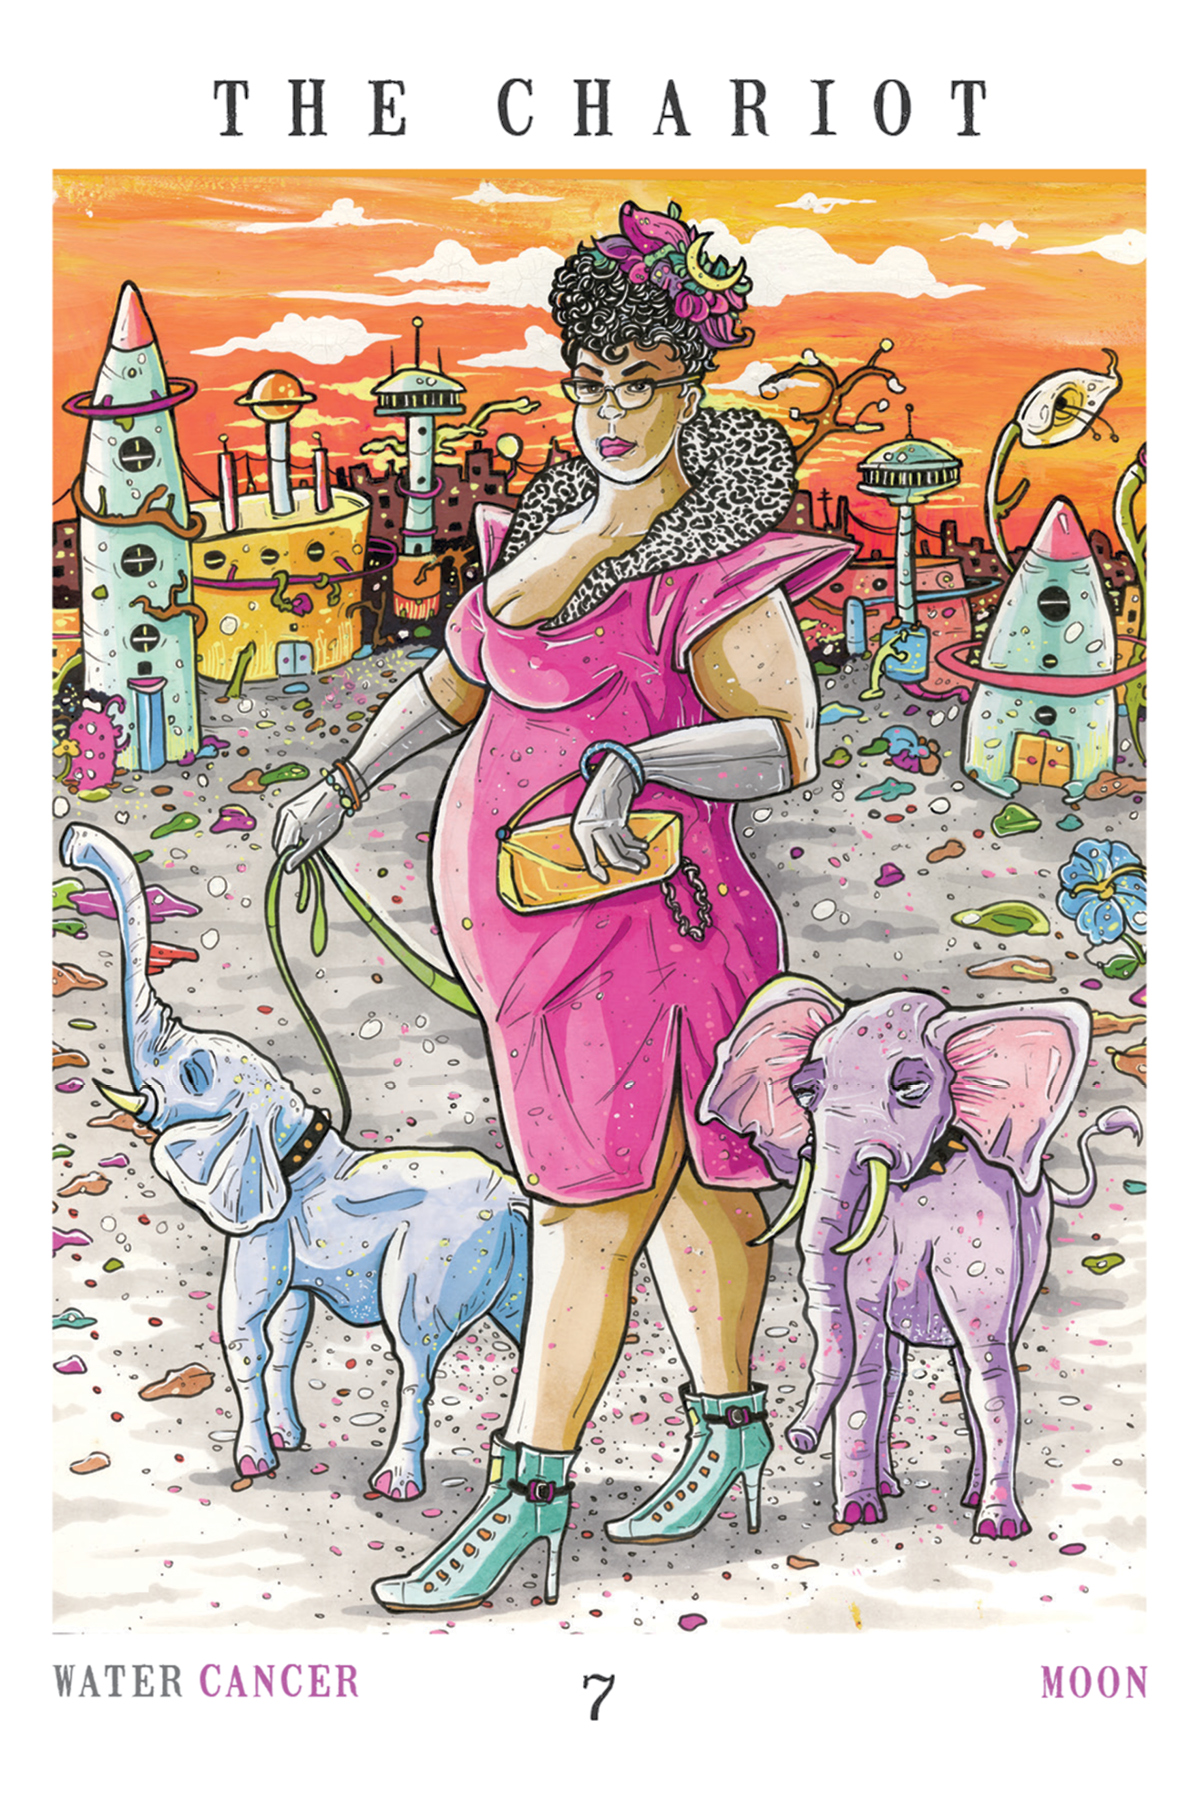 The Chariot - The Next World Tarot - A femme in a pink cocktail dress, fur collar, turquoise boots, and with a crescent moon in her hair, takes her pet miniature elephants for a walk